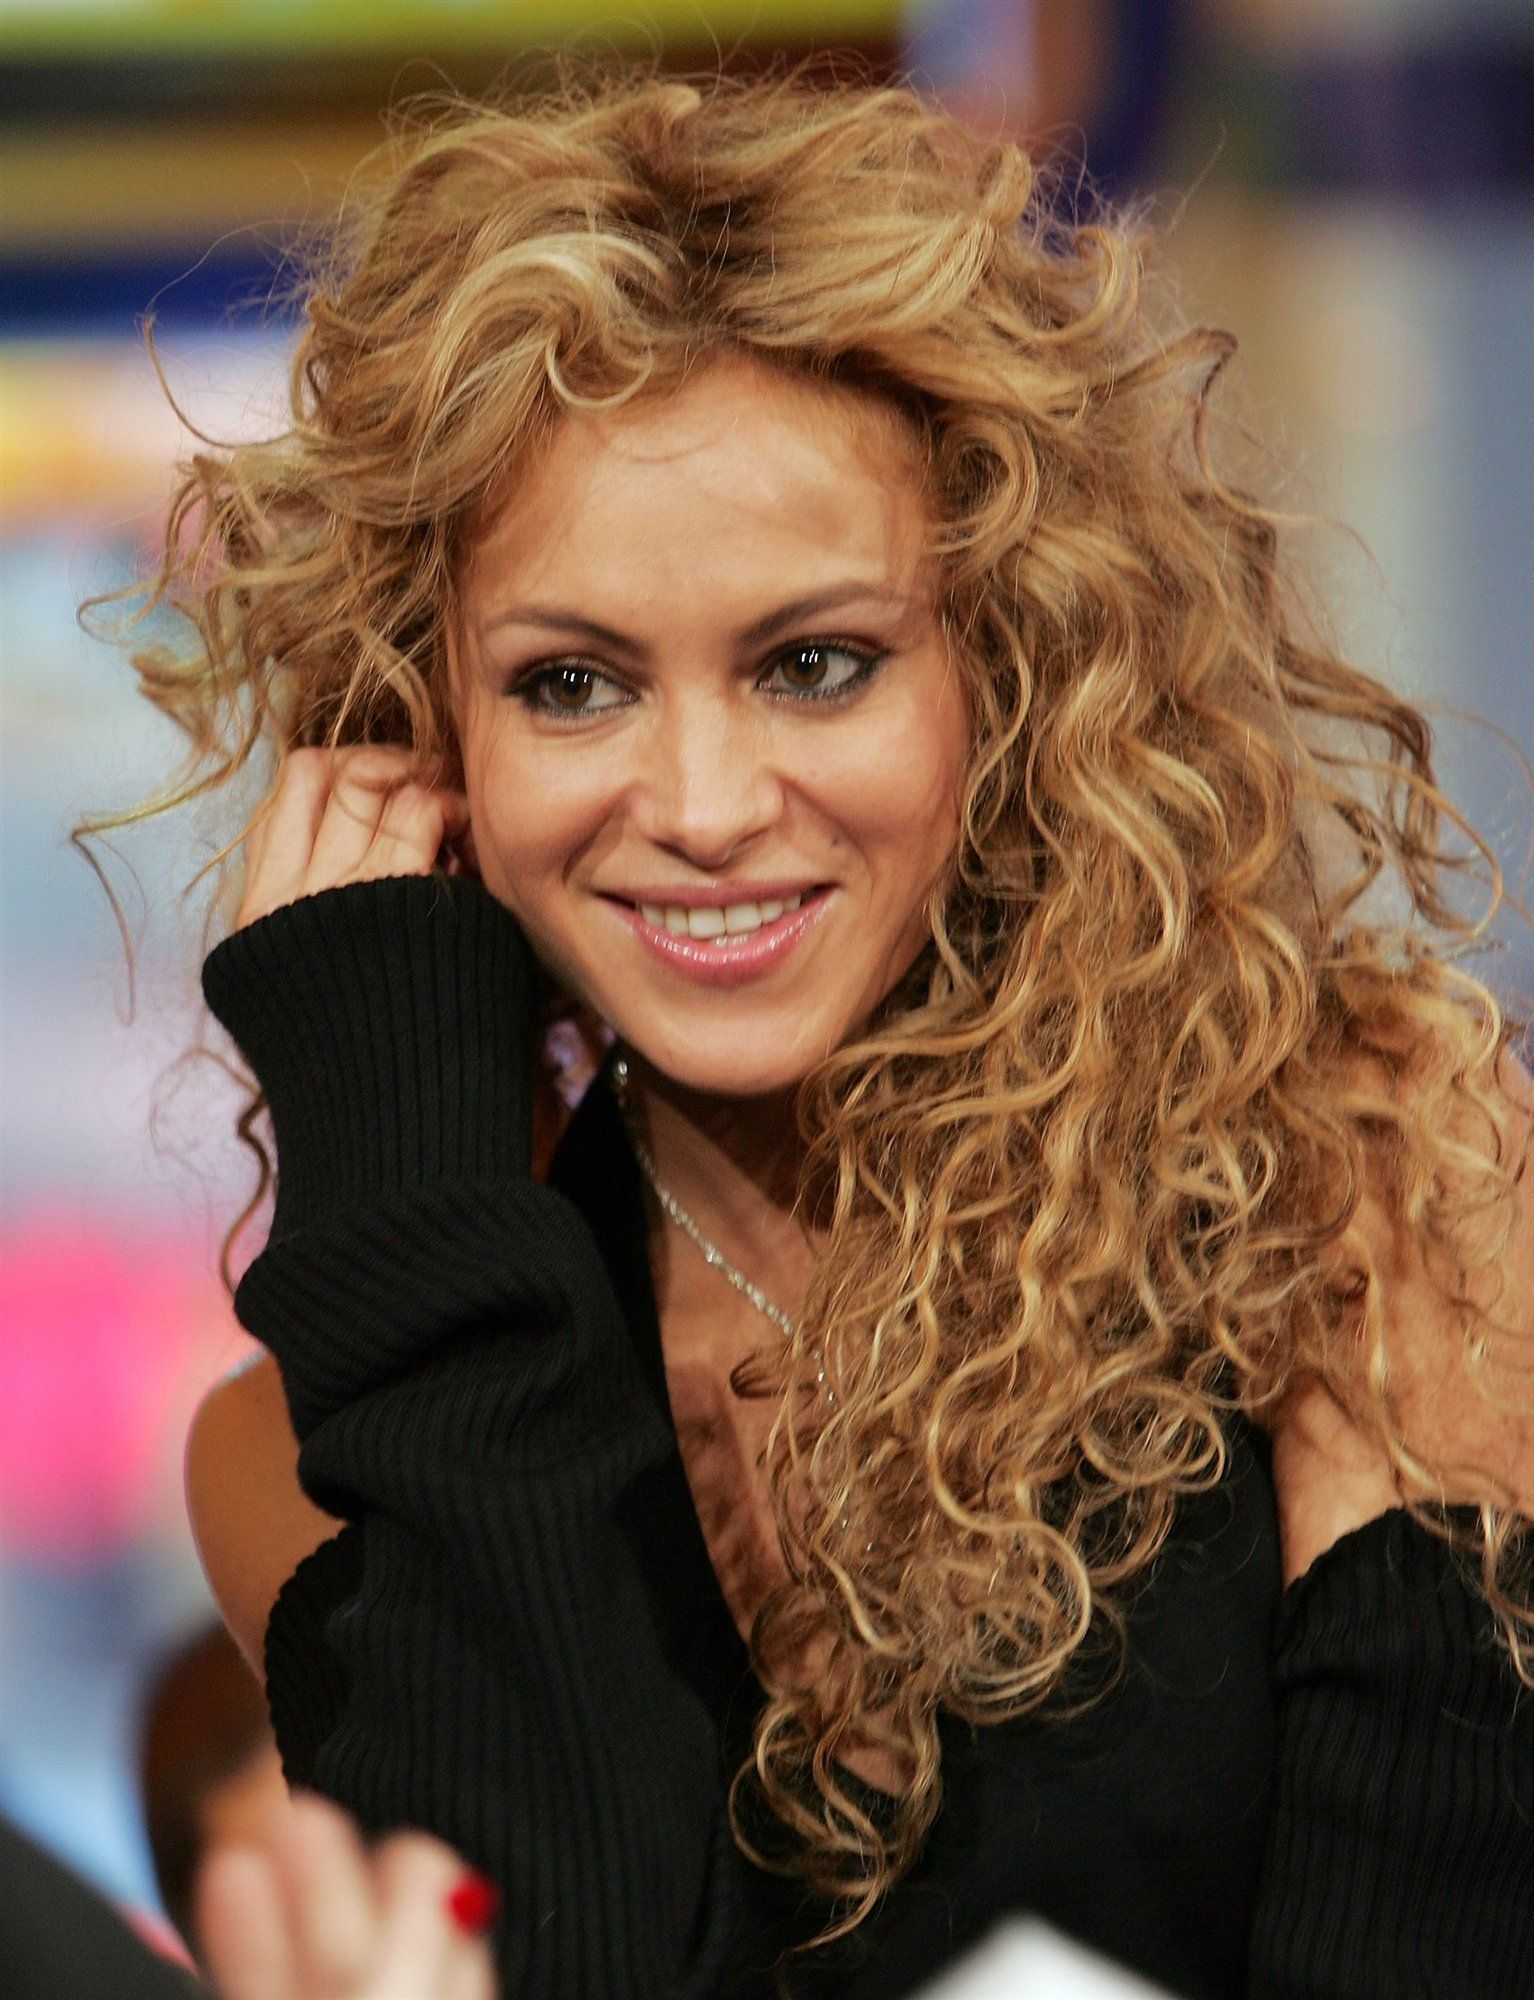 paulina rubio baila casanova lyricspaulina rubio casanova, paulina rubio me quema, paulina rubio скачать, paulina rubio песни, paulina rubio 2016, paulina rubio baila casanova скачать, paulina rubio baila casanova lyrics, paulina rubio the one you love, paulina rubio gallery, paulina rubio todo mi amor, paulina rubio si te vas, paulina rubio say the word, paulina rubio solo por ti, paulina rubio ninguna sola palabra, paulina rubio lyrics, paulina rubio mi nuevo vicio (ft. morat) lyrics, paulina rubio tal vez, paulina rubio billboard, paulina rubio palabras, paulina rubio separacion